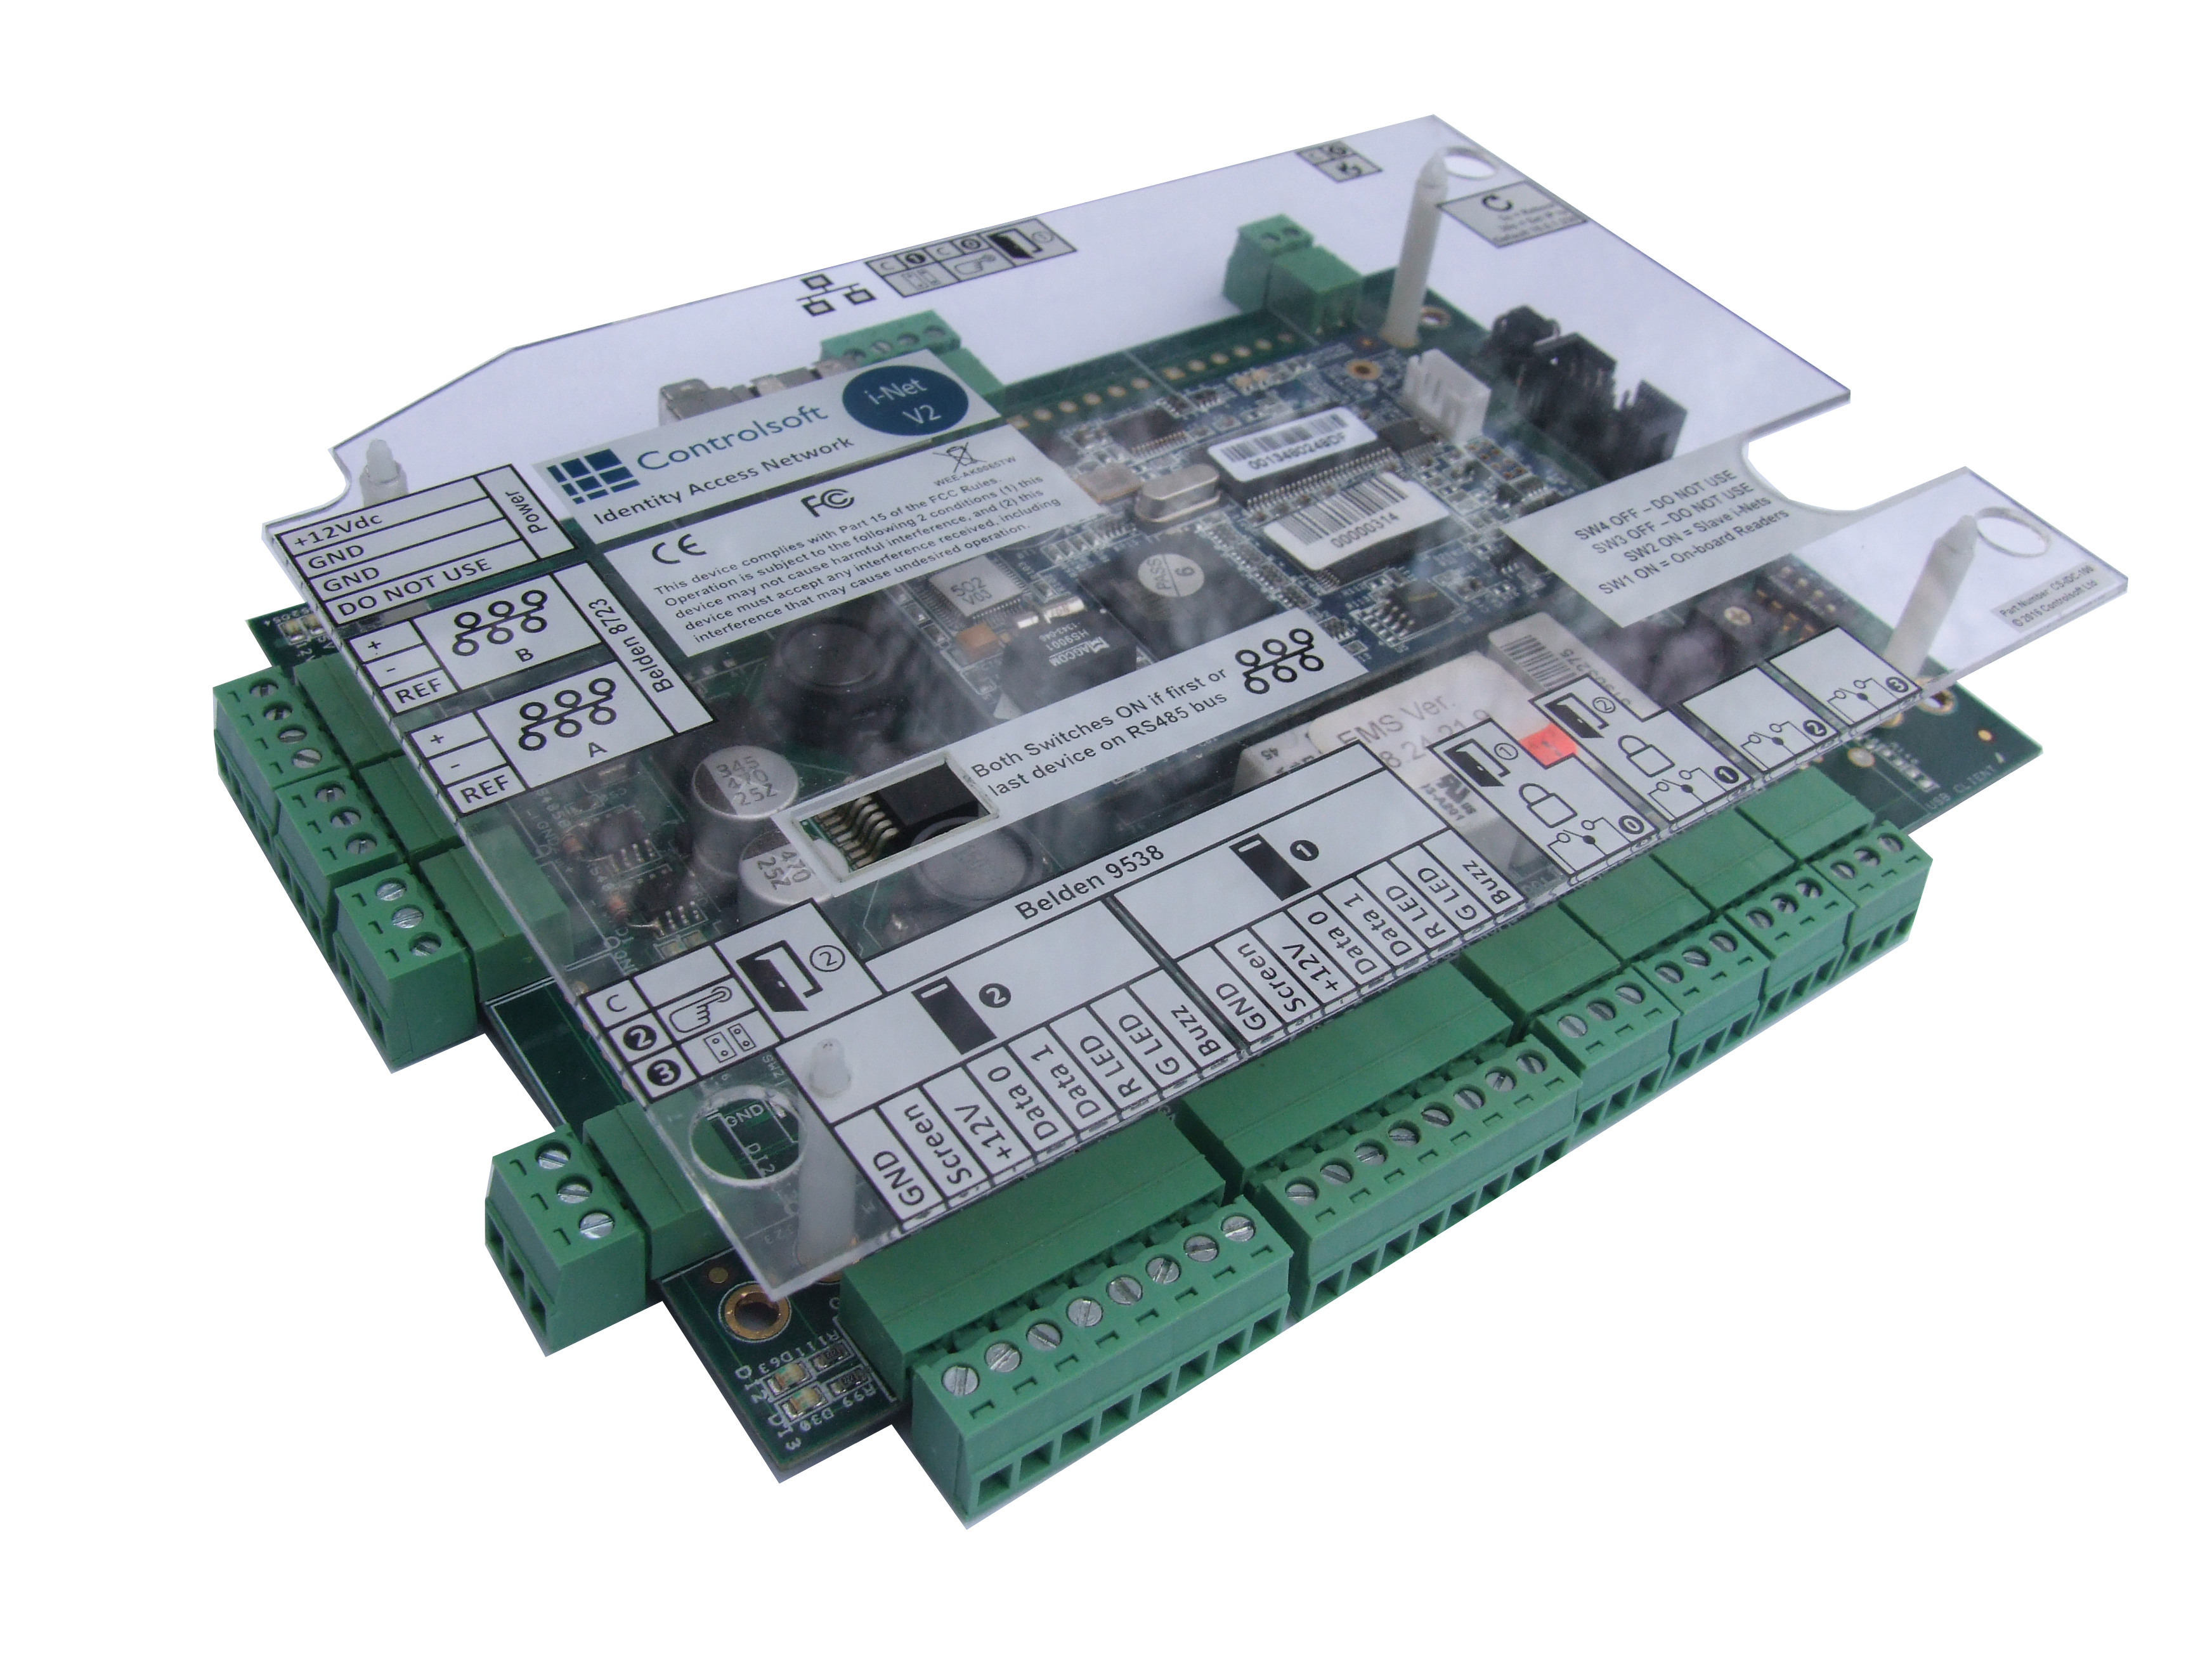 Identity Access Controller PCB